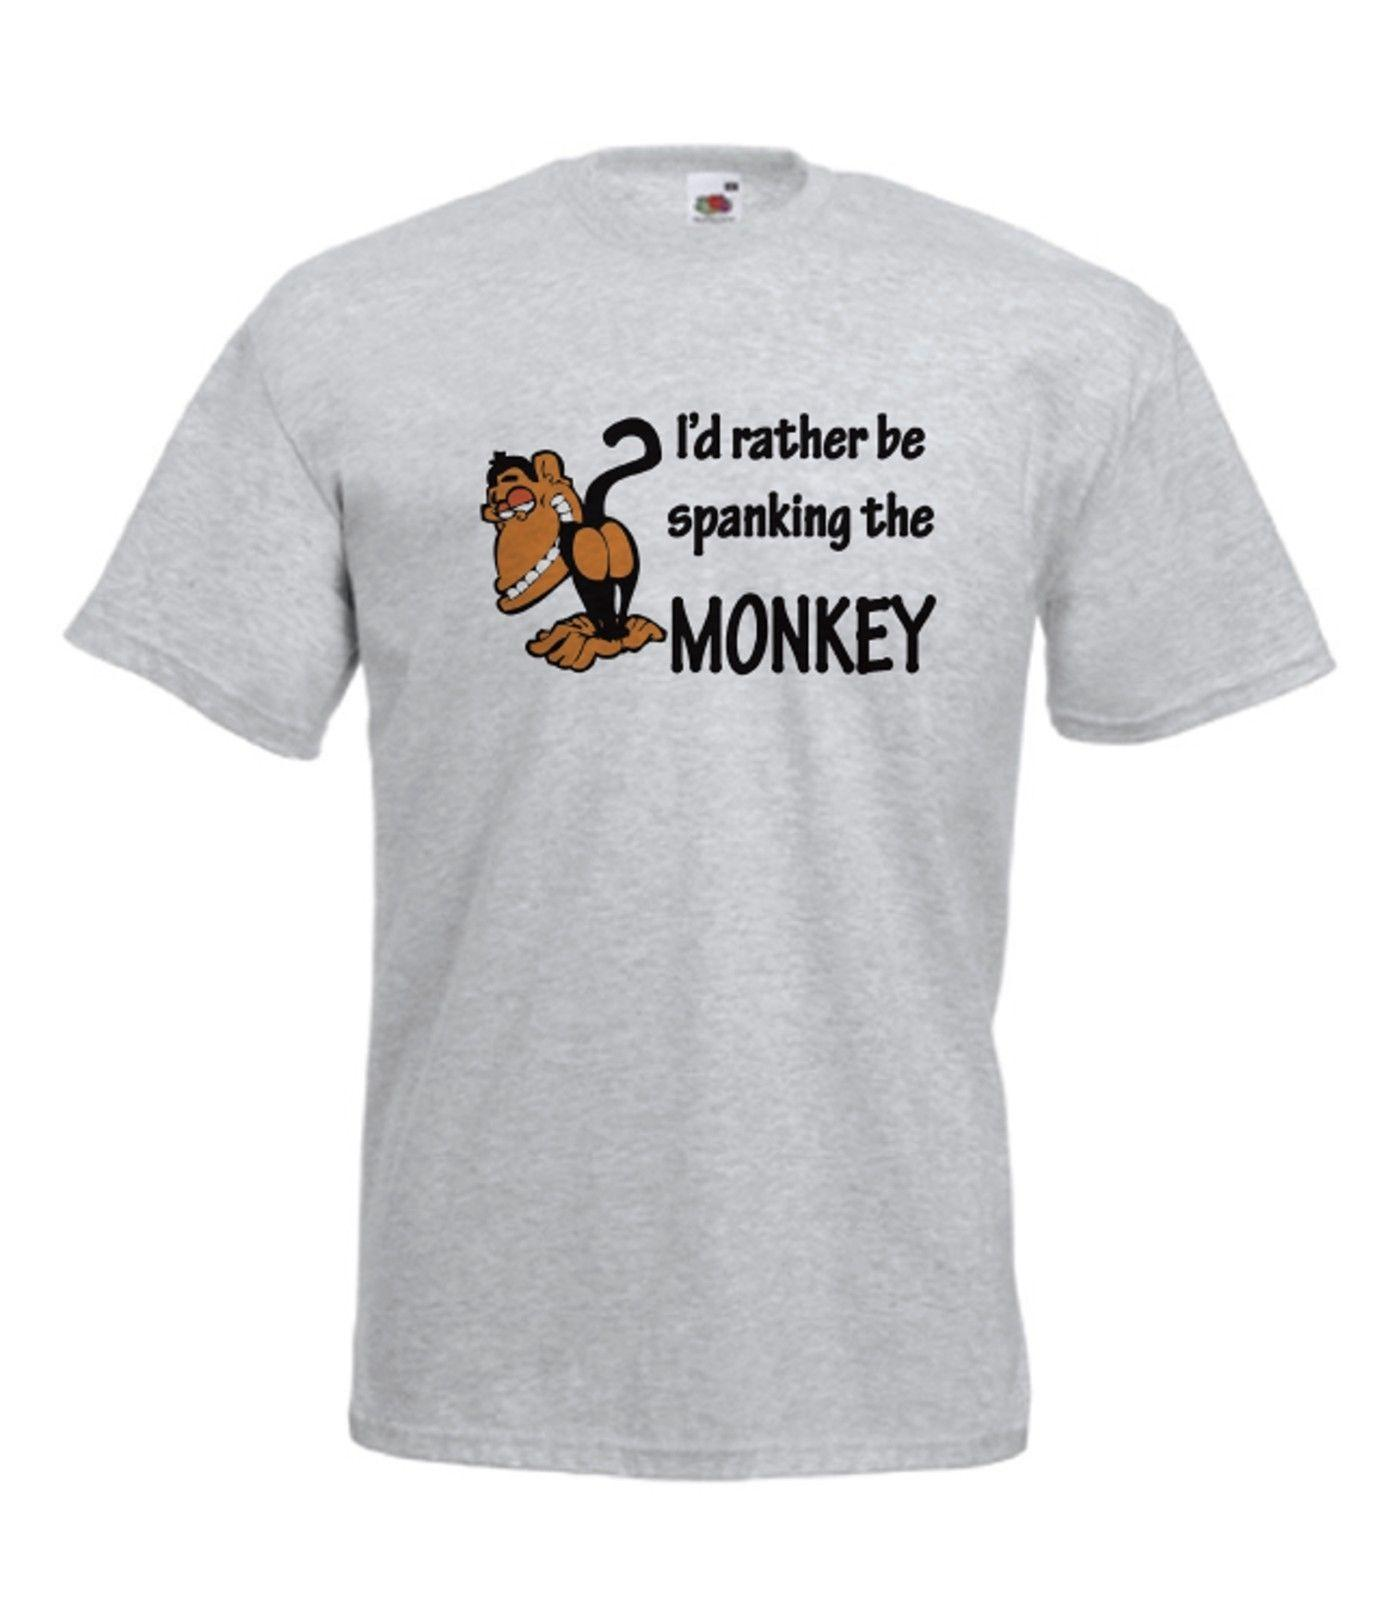 SPANKING MONKEY Funny Fathers Gift Xmas Birthday Gift Ideas Mens Womens T  SHIRTFunny Unisex Casual Tshirt Gift Funky T Shirt Design T Shirt Every Day  From ...